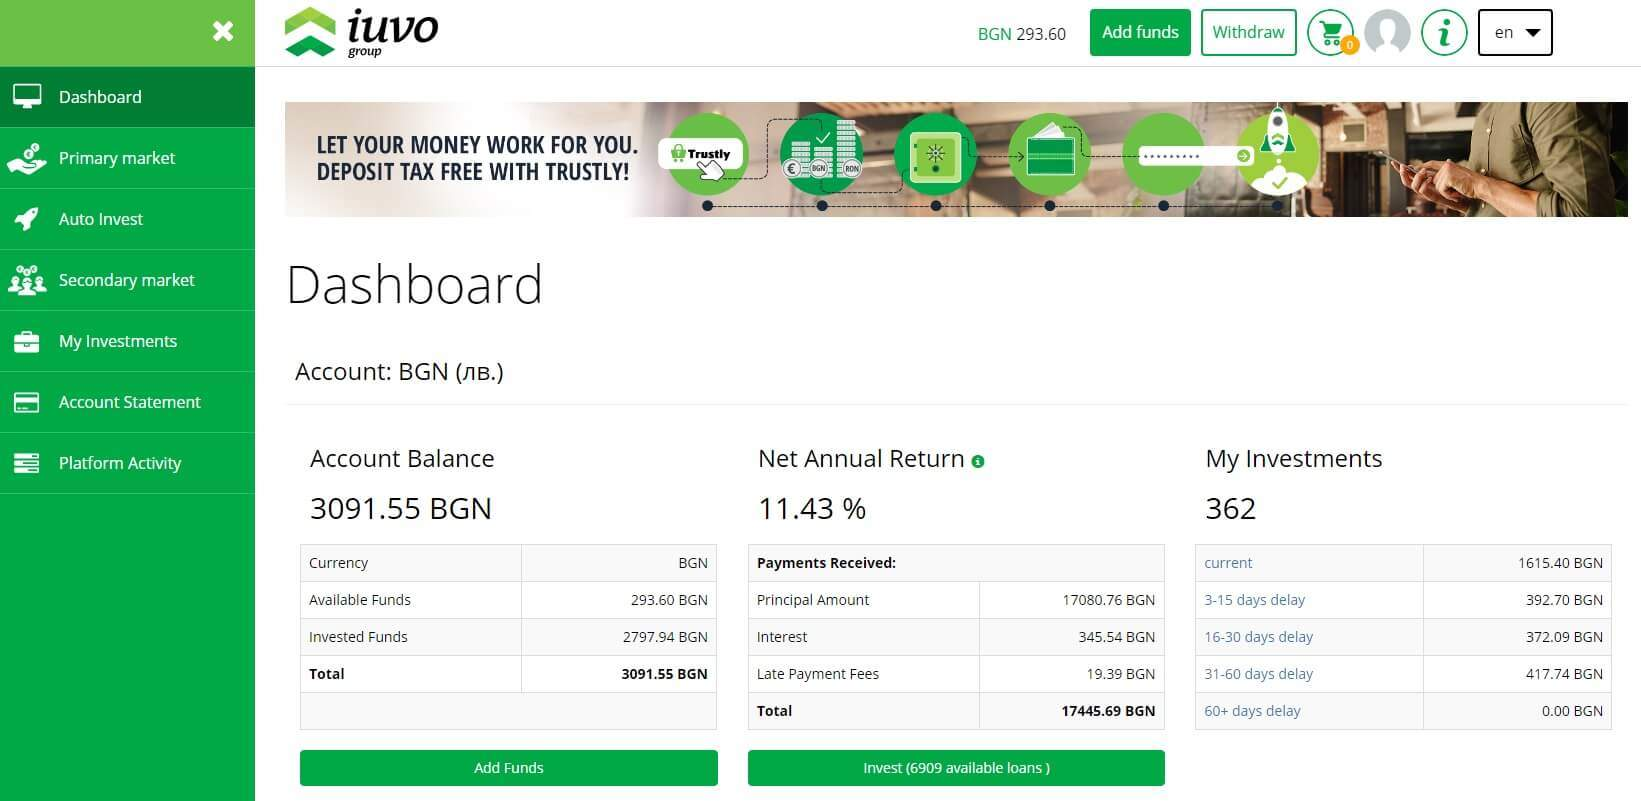 Iuvo Group account overview